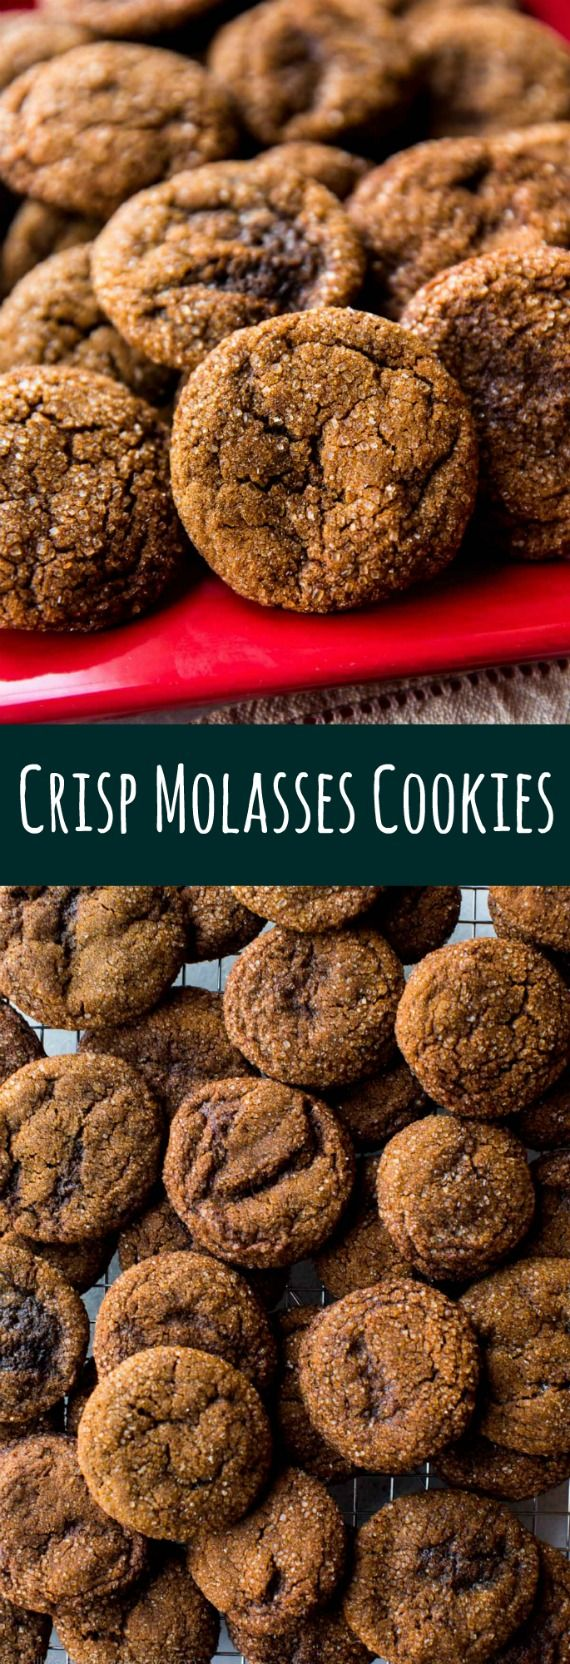 How to make CRISP ginger molasses cookies. These Christmas cookies have so much flavor with ginger, cinnamon, cloves, and molasses! Recipe on sallysbakingaddiction.com